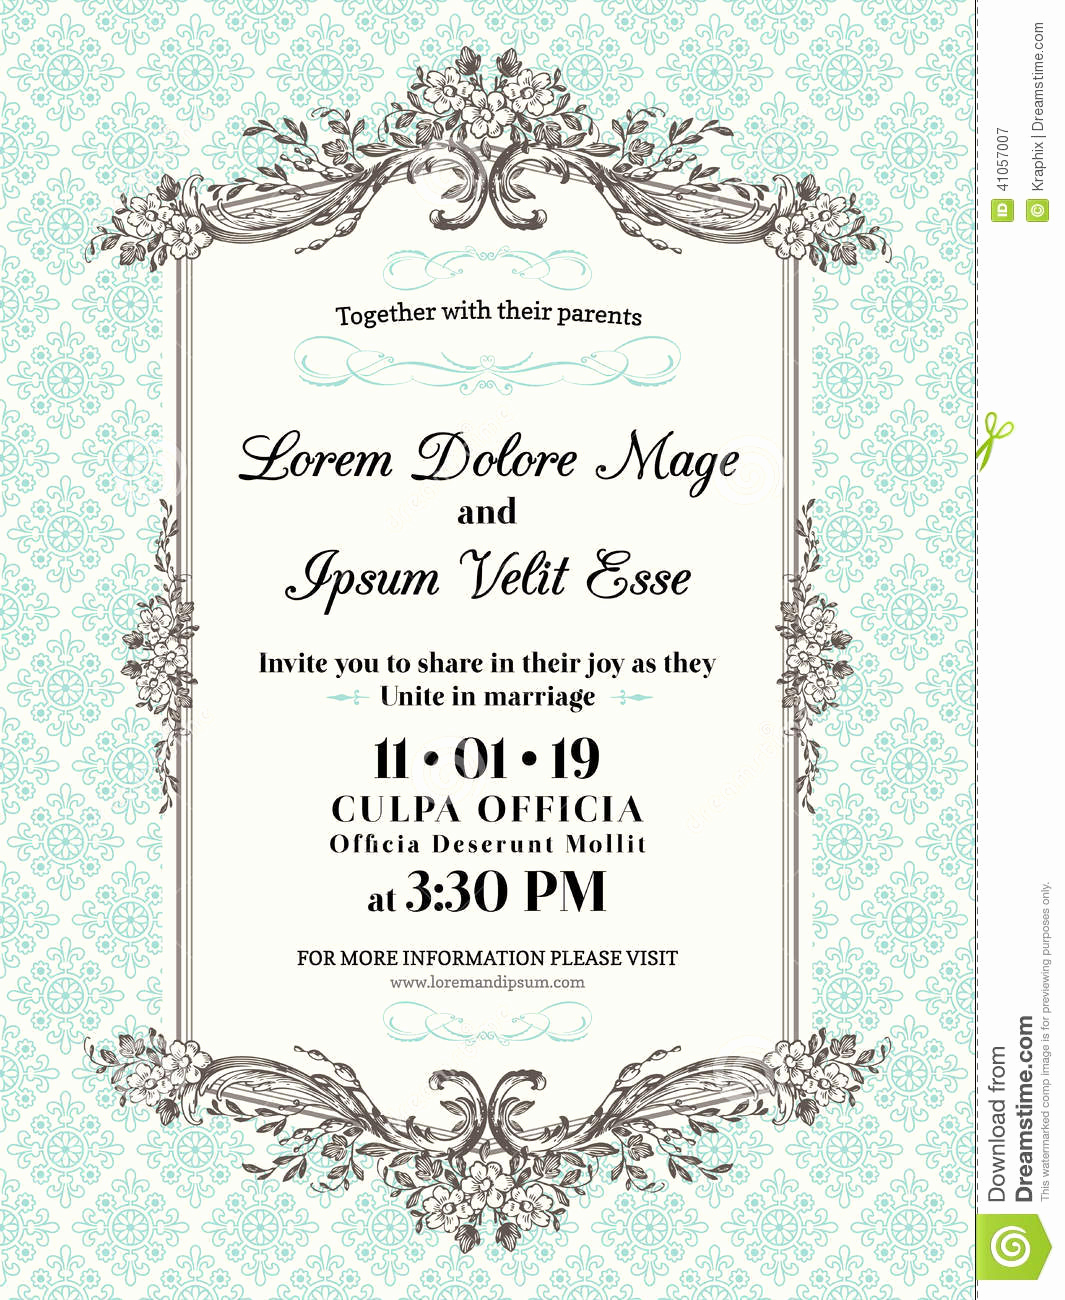 Wedding Invitation Border Design New Vintage Wedding Invitation Border and Frame Stock Vector